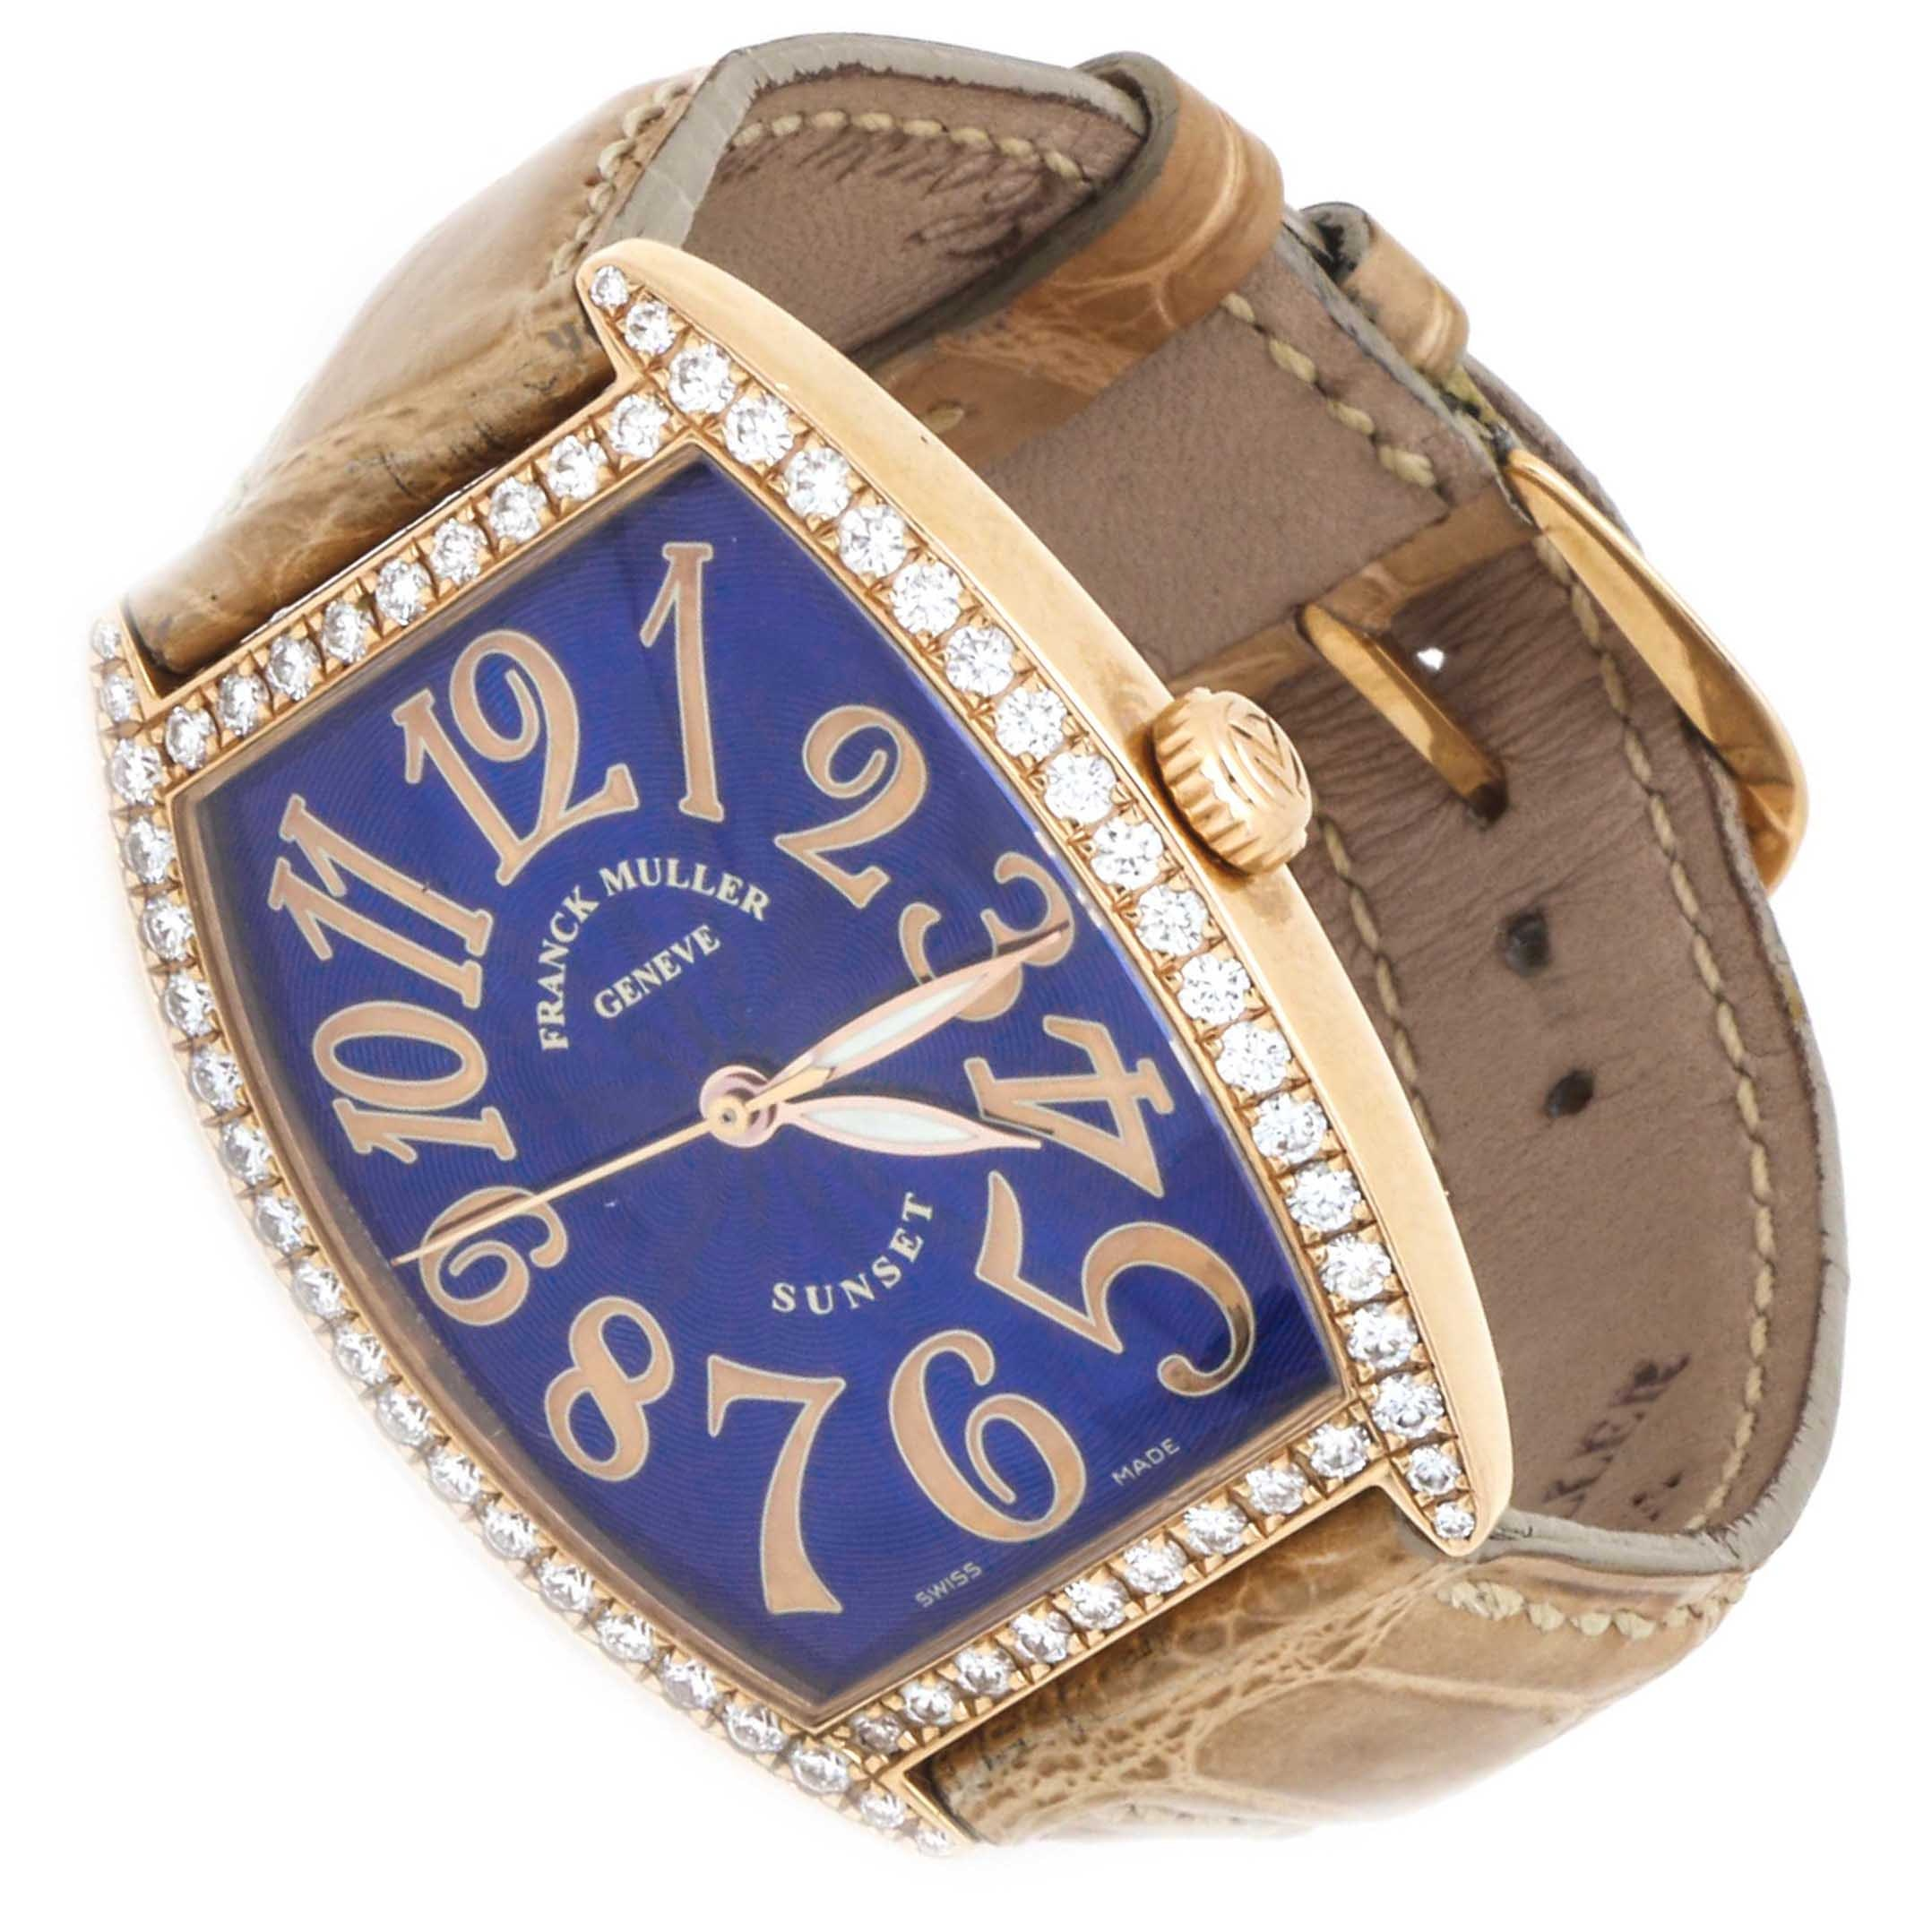 Franck Muller Sunset 18K Rose Gold 1.62 CTW Diamond Wristwatch